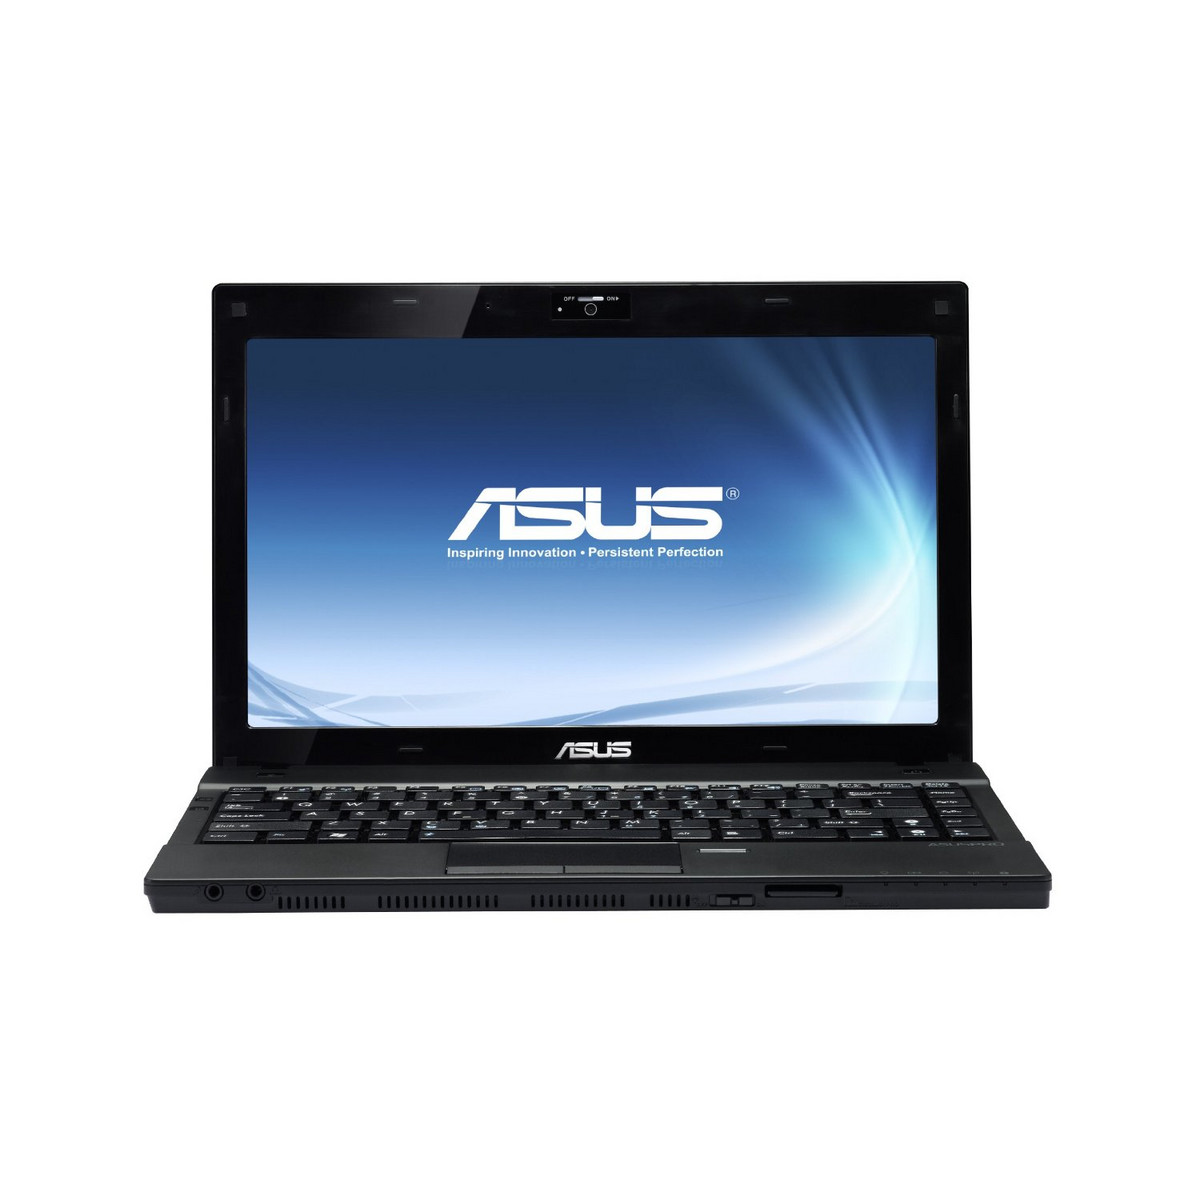 ASUS B23E NOTEBOOK WEBCAM DRIVERS WINDOWS